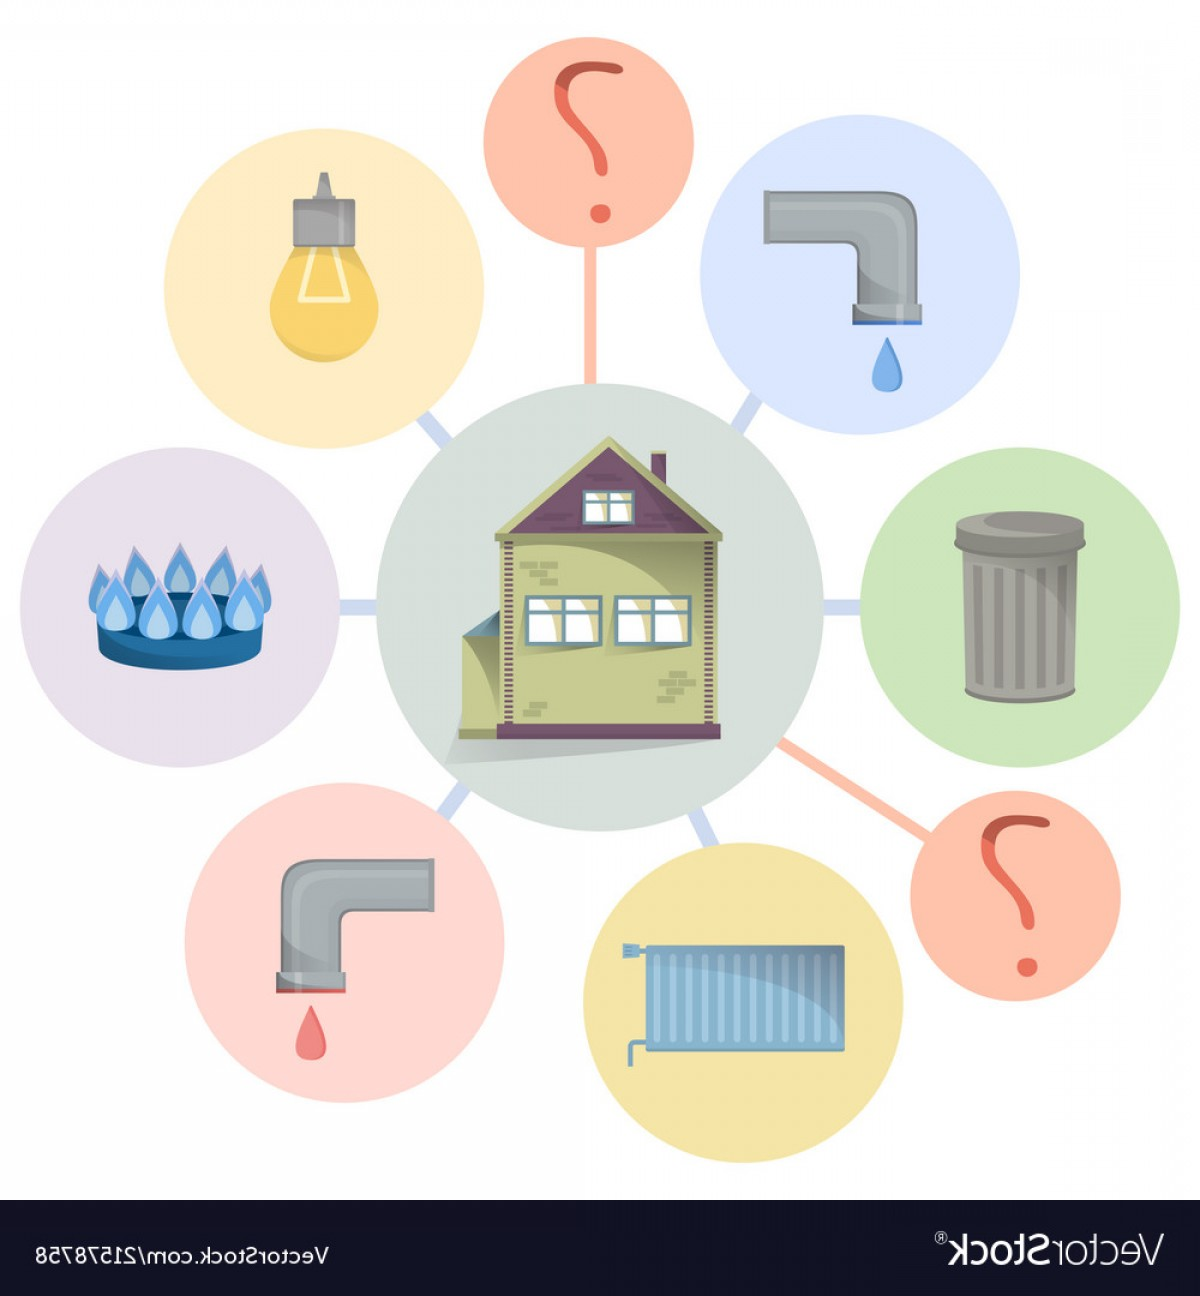 Utilities clipart graphic freeuse Paying Utilities Bills Hidden Charges Unclear Vector | SOIDERGI graphic freeuse